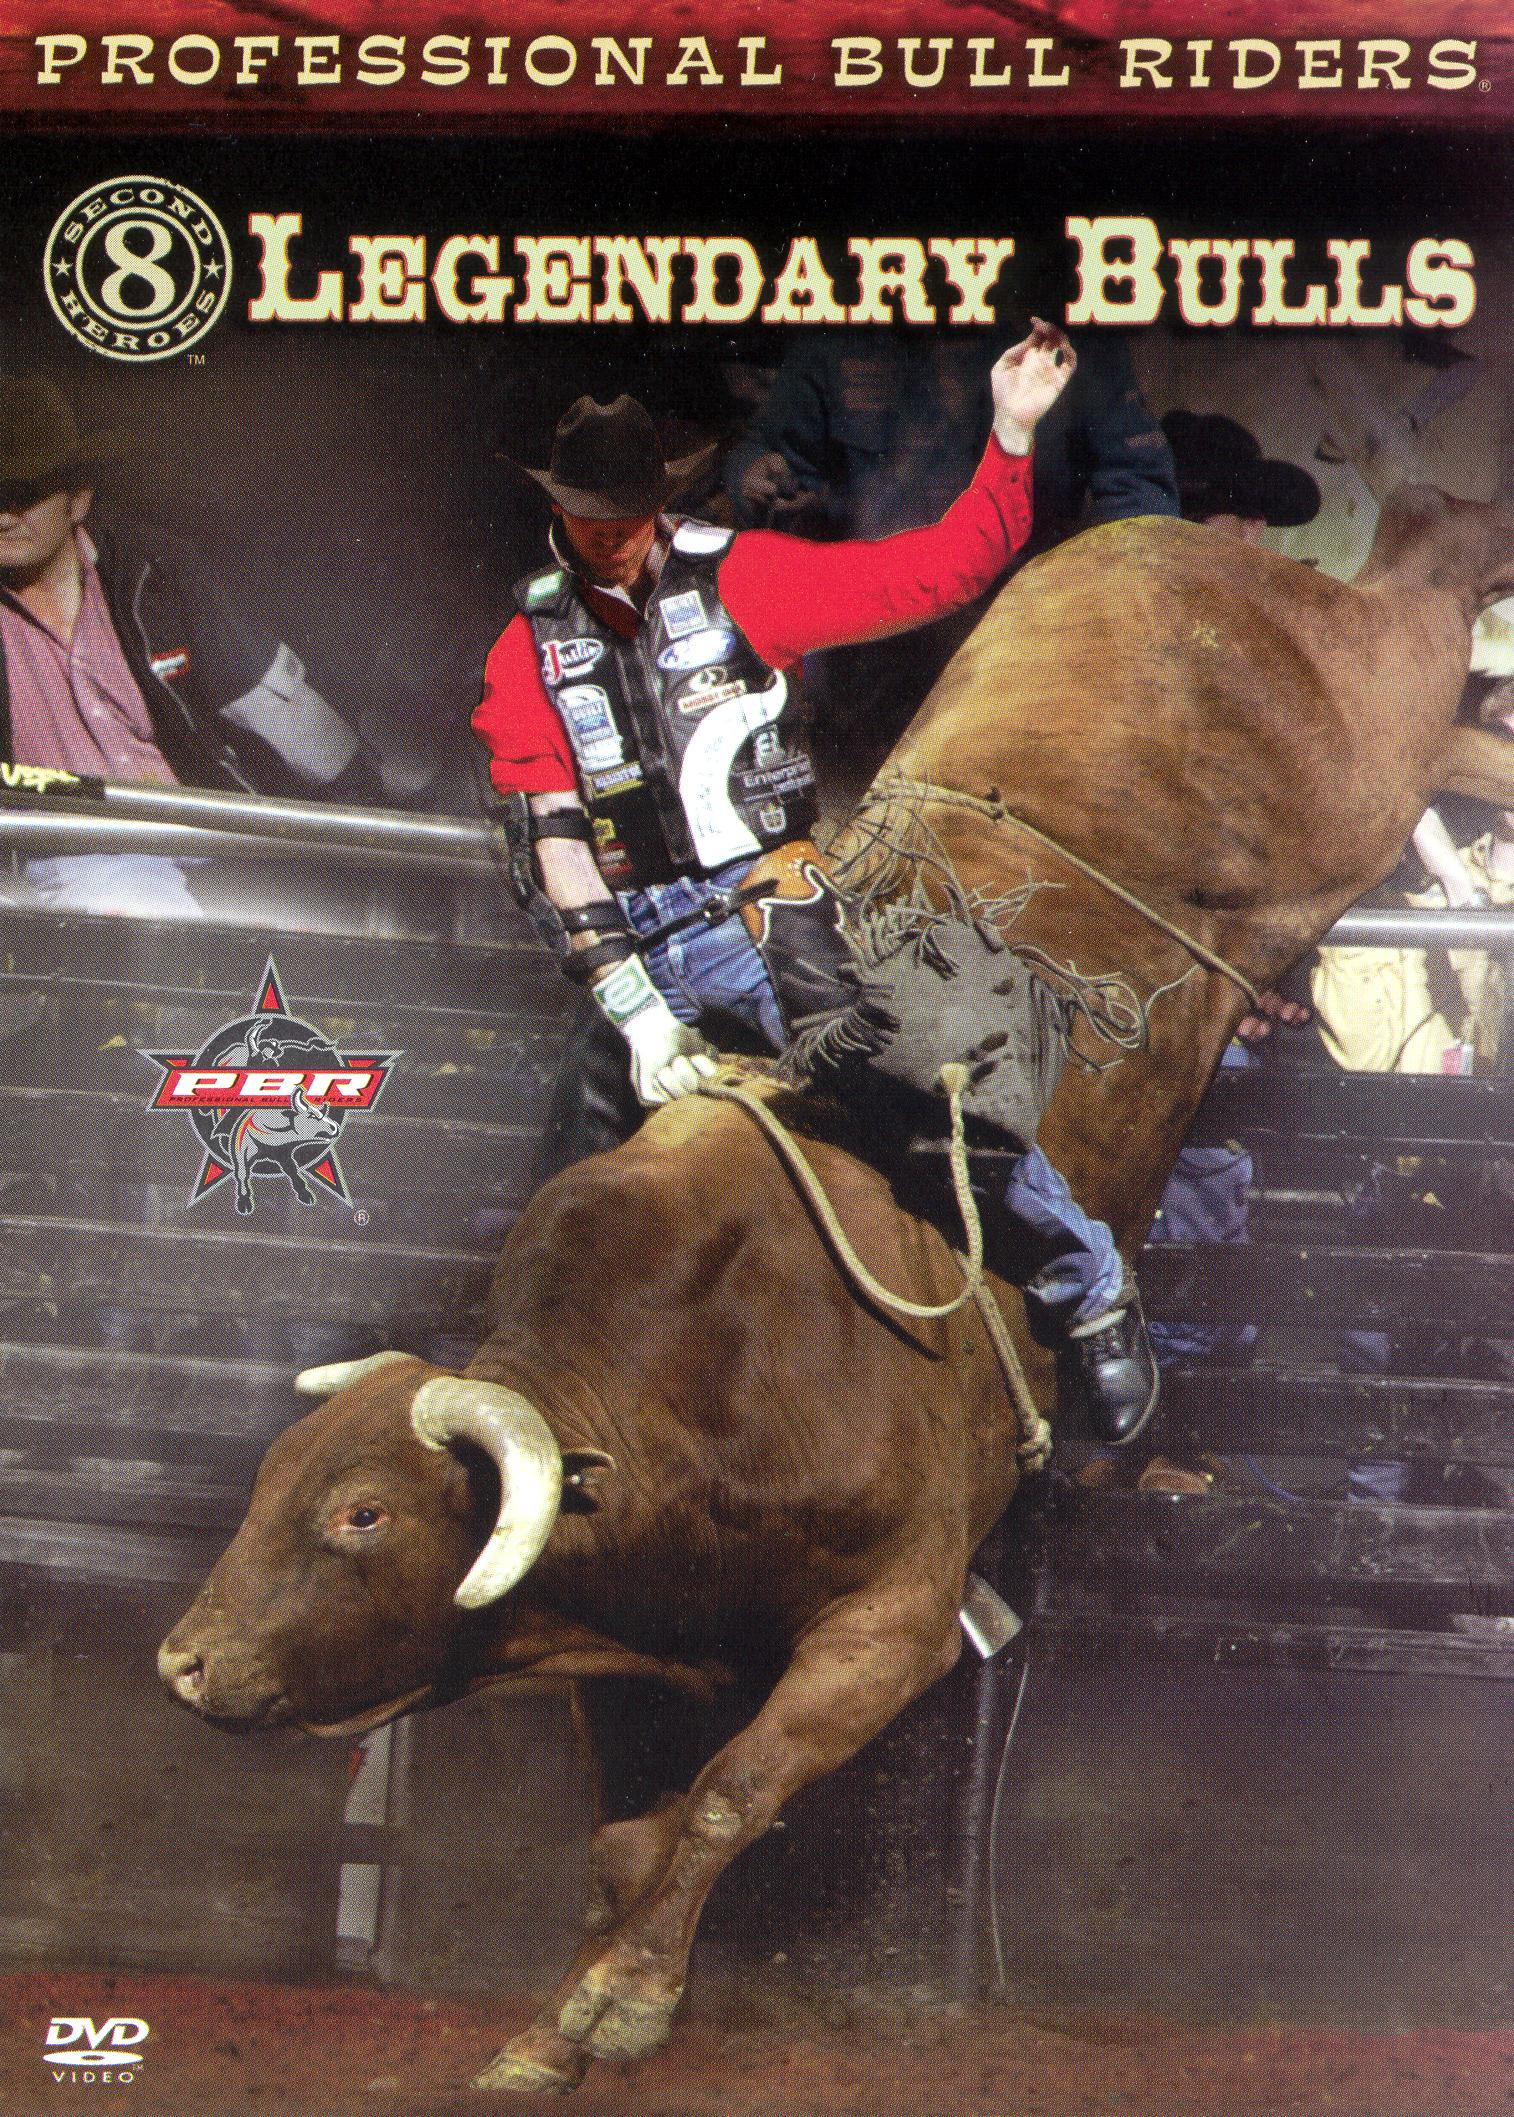 Professsional Bull Riders: 8 Second Heroes - Legendary Bulls